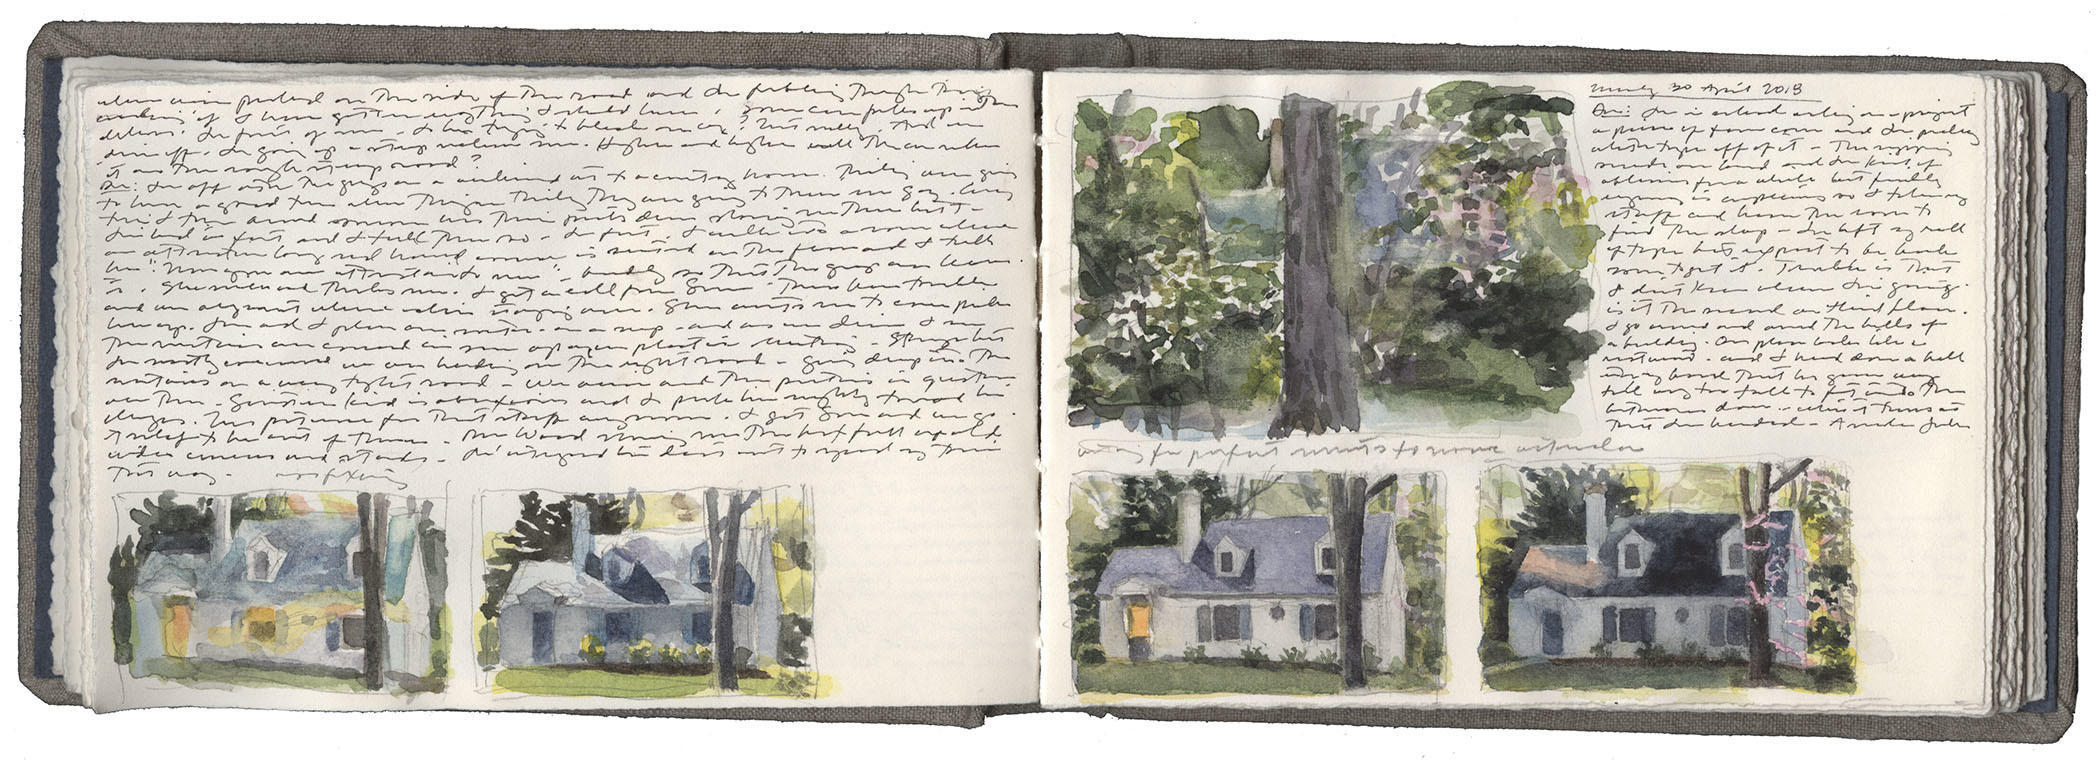 Studies of Houses in Spring image